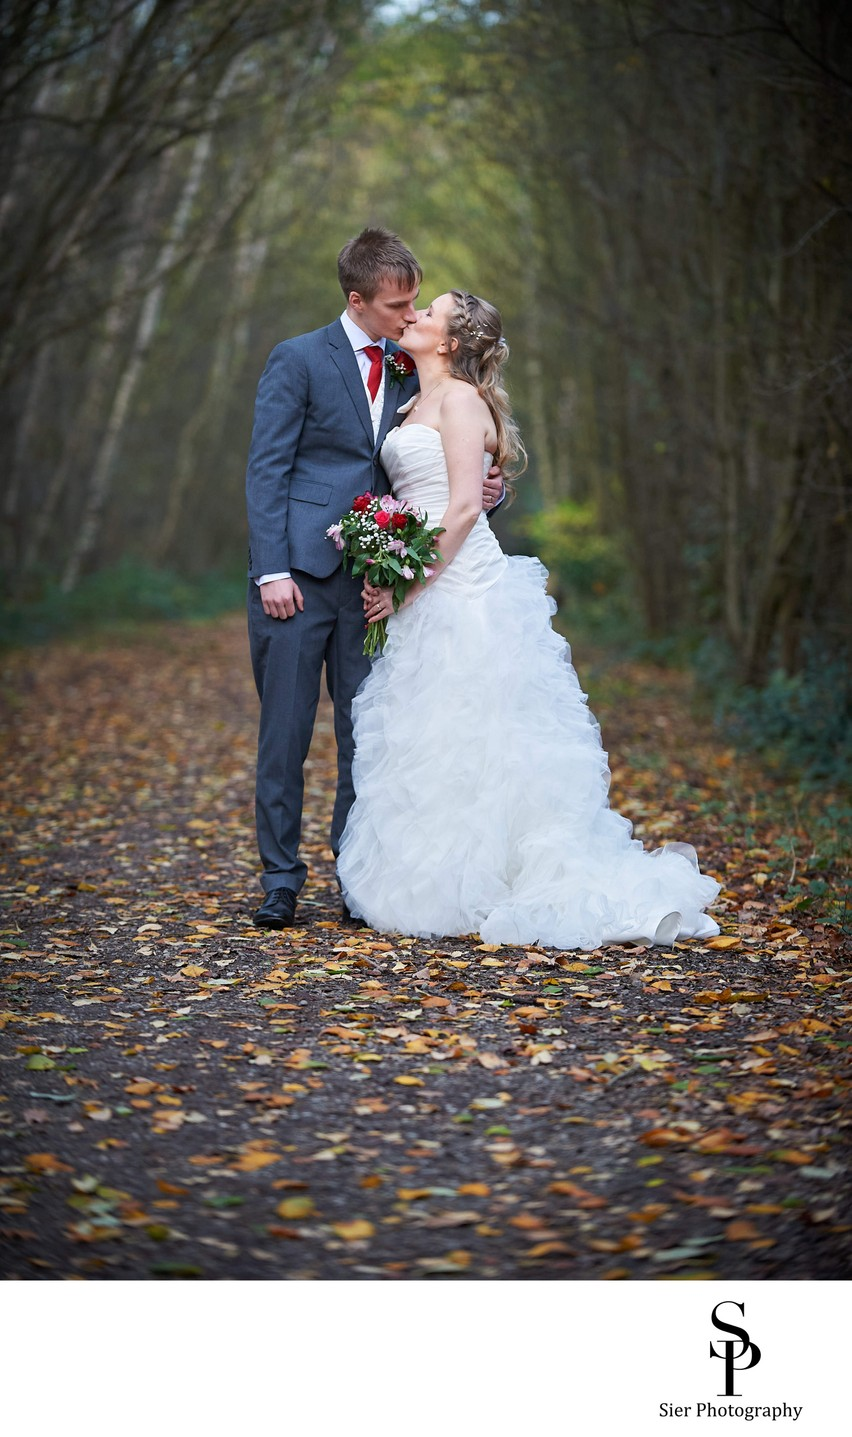 Rother Valley Bride and Groom Wedding Photo